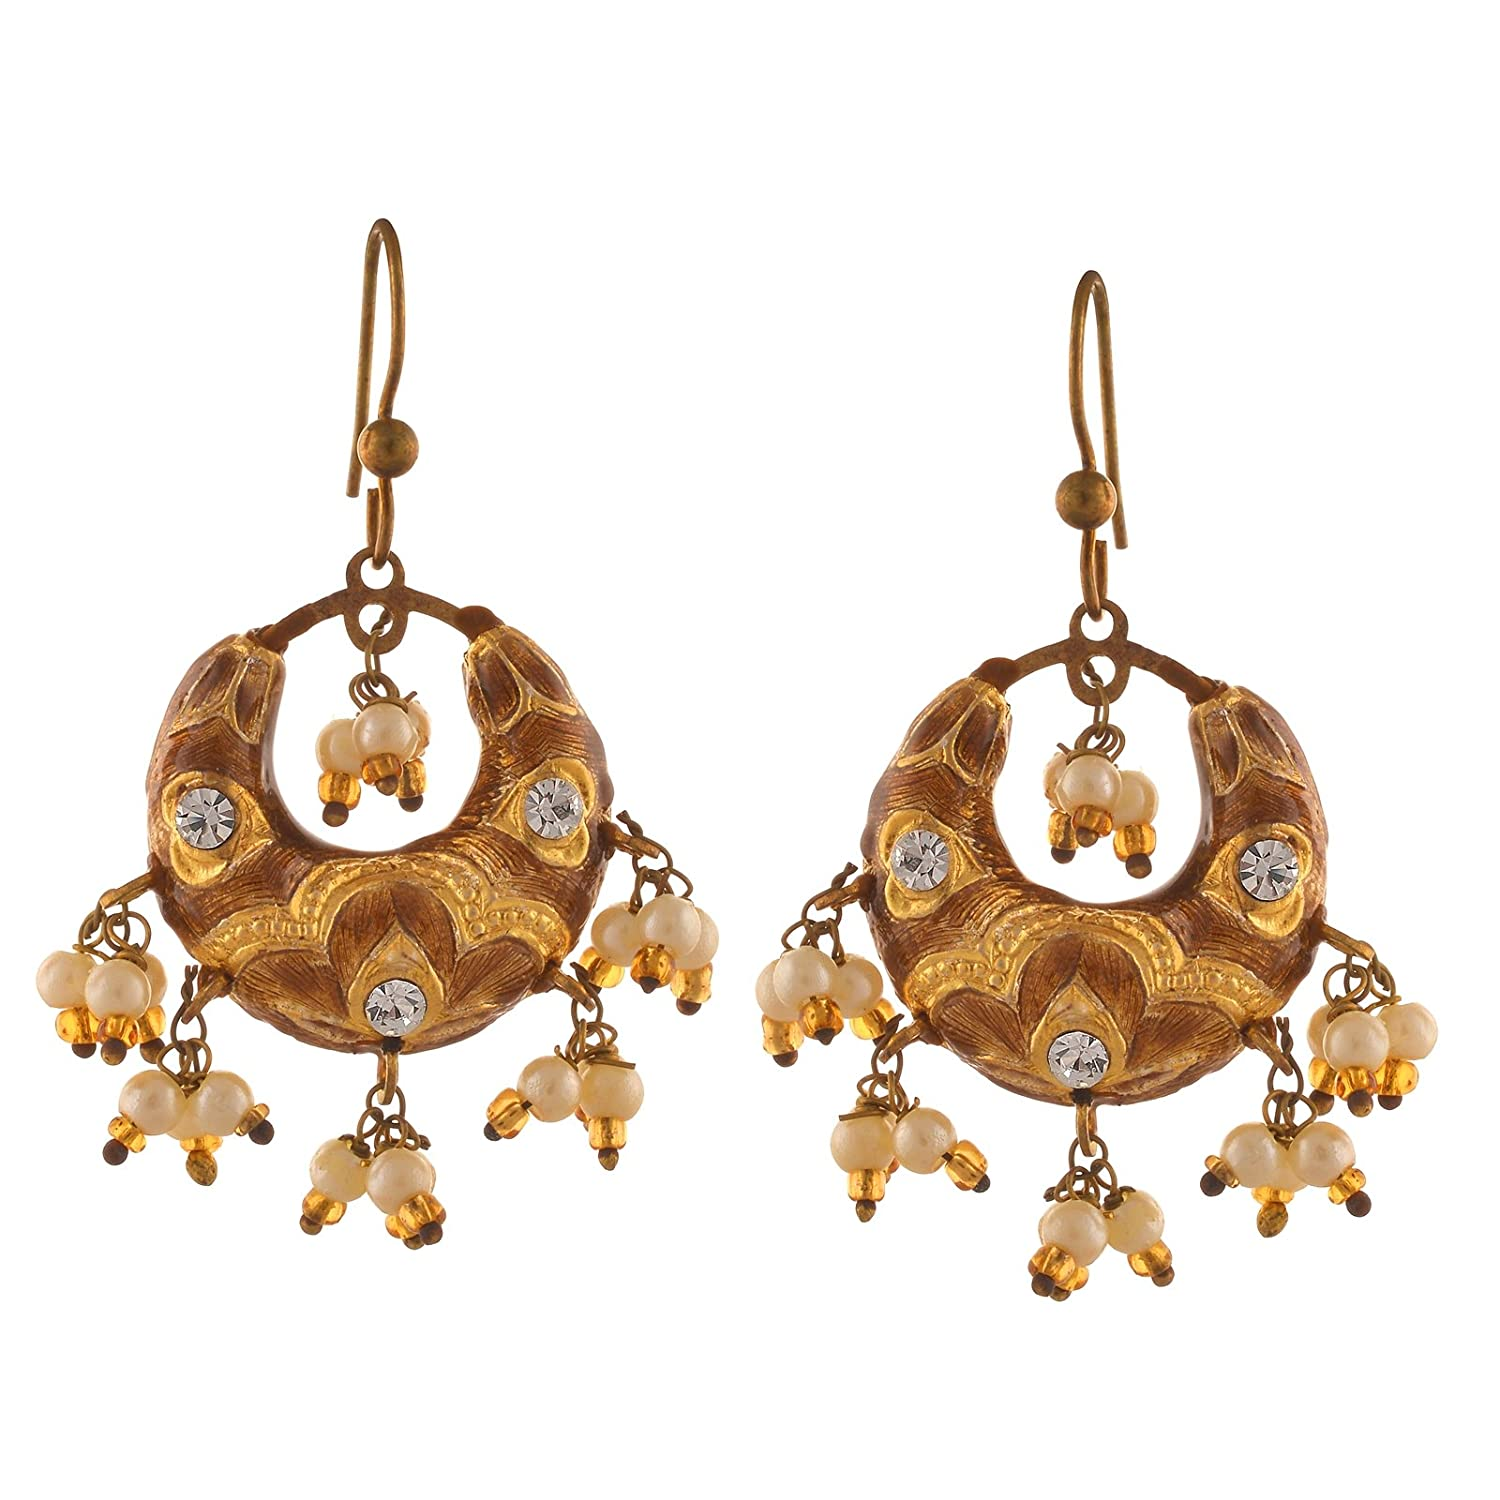 Zephyrr Fashion Golden Hook Chandbali Earrings with Pearls Zircons for Girls